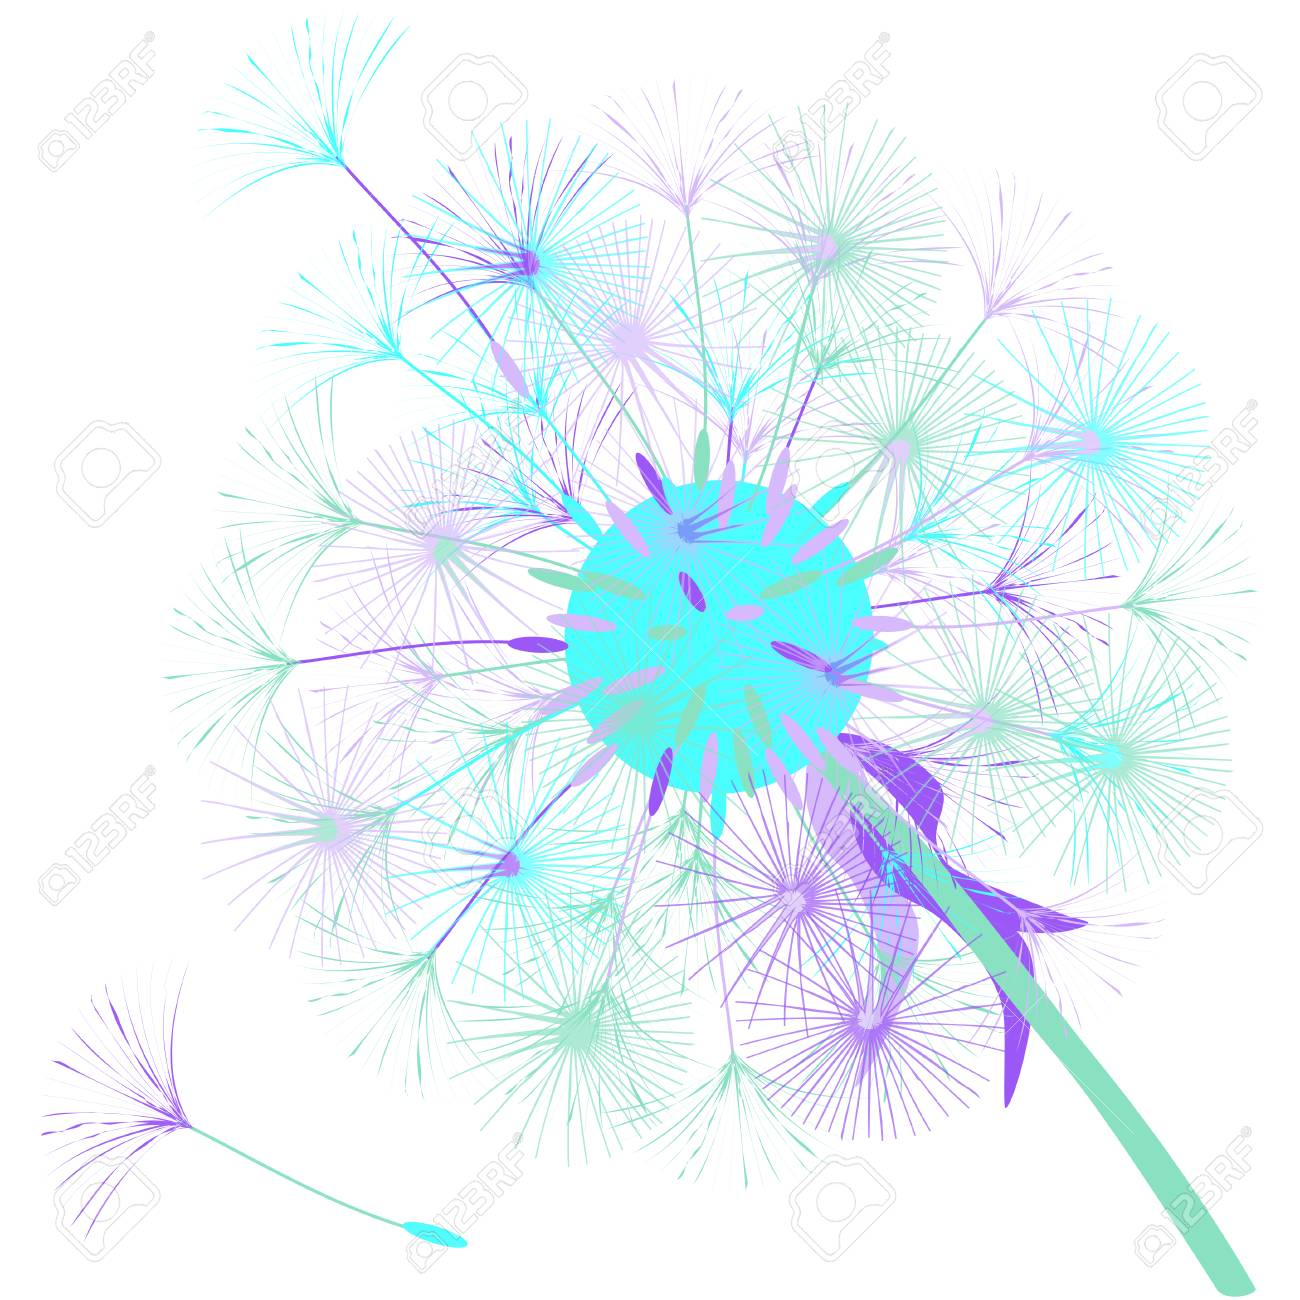 abstract background of a dandelion for design the wind blows